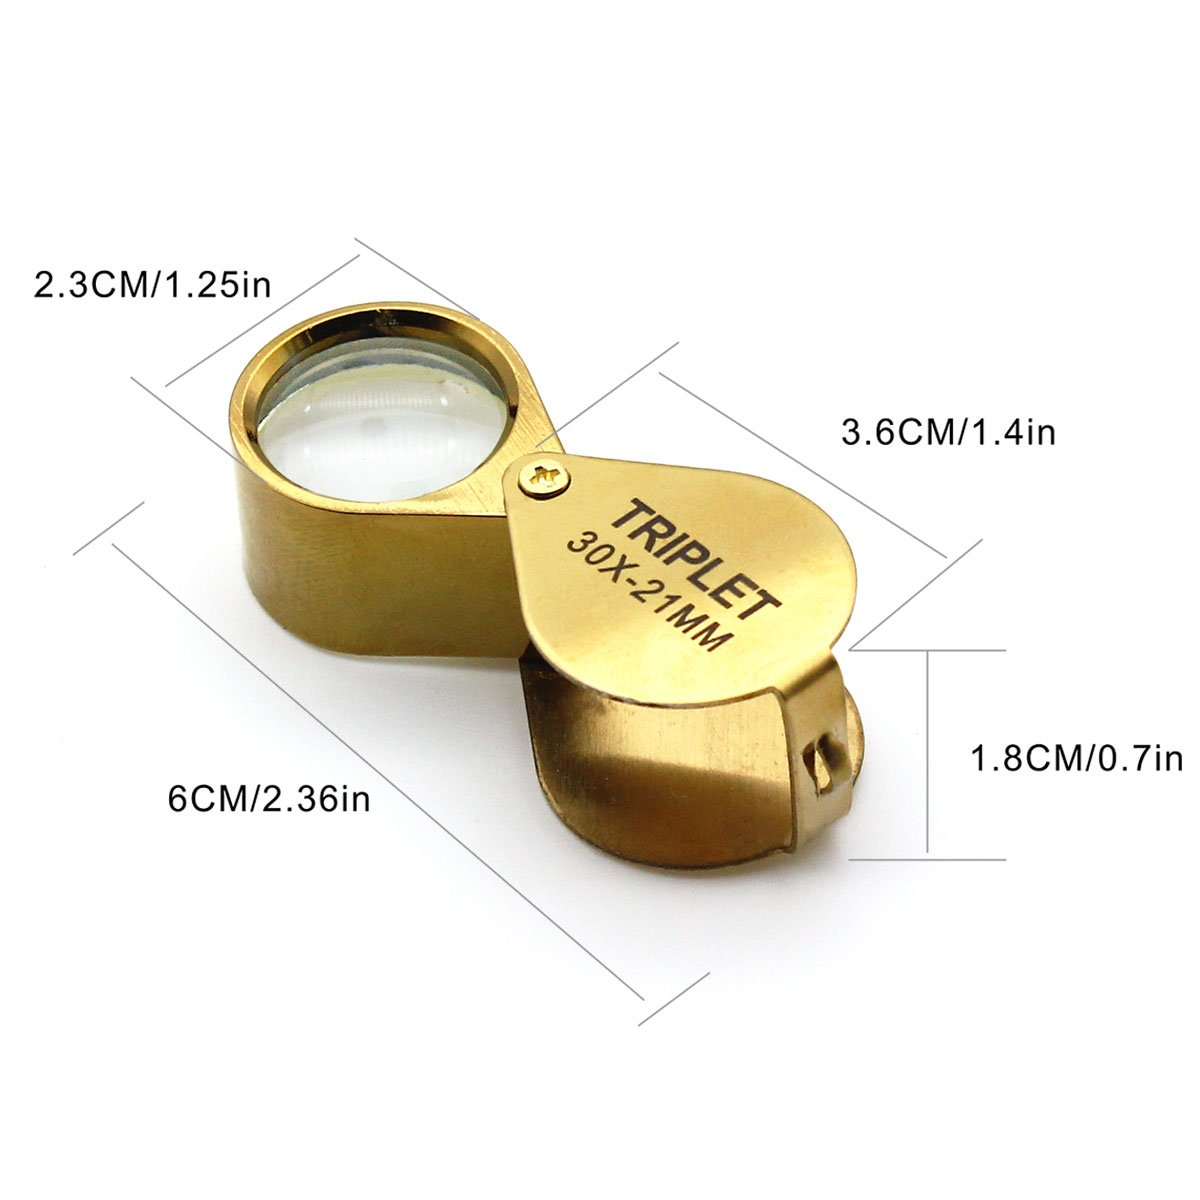 Increase Vision QiCheng/&LYS 1-3//4 Inch Optical Magnifier Lens and 36-Inch Gold Chain for Library Zooming Reading Fine Print